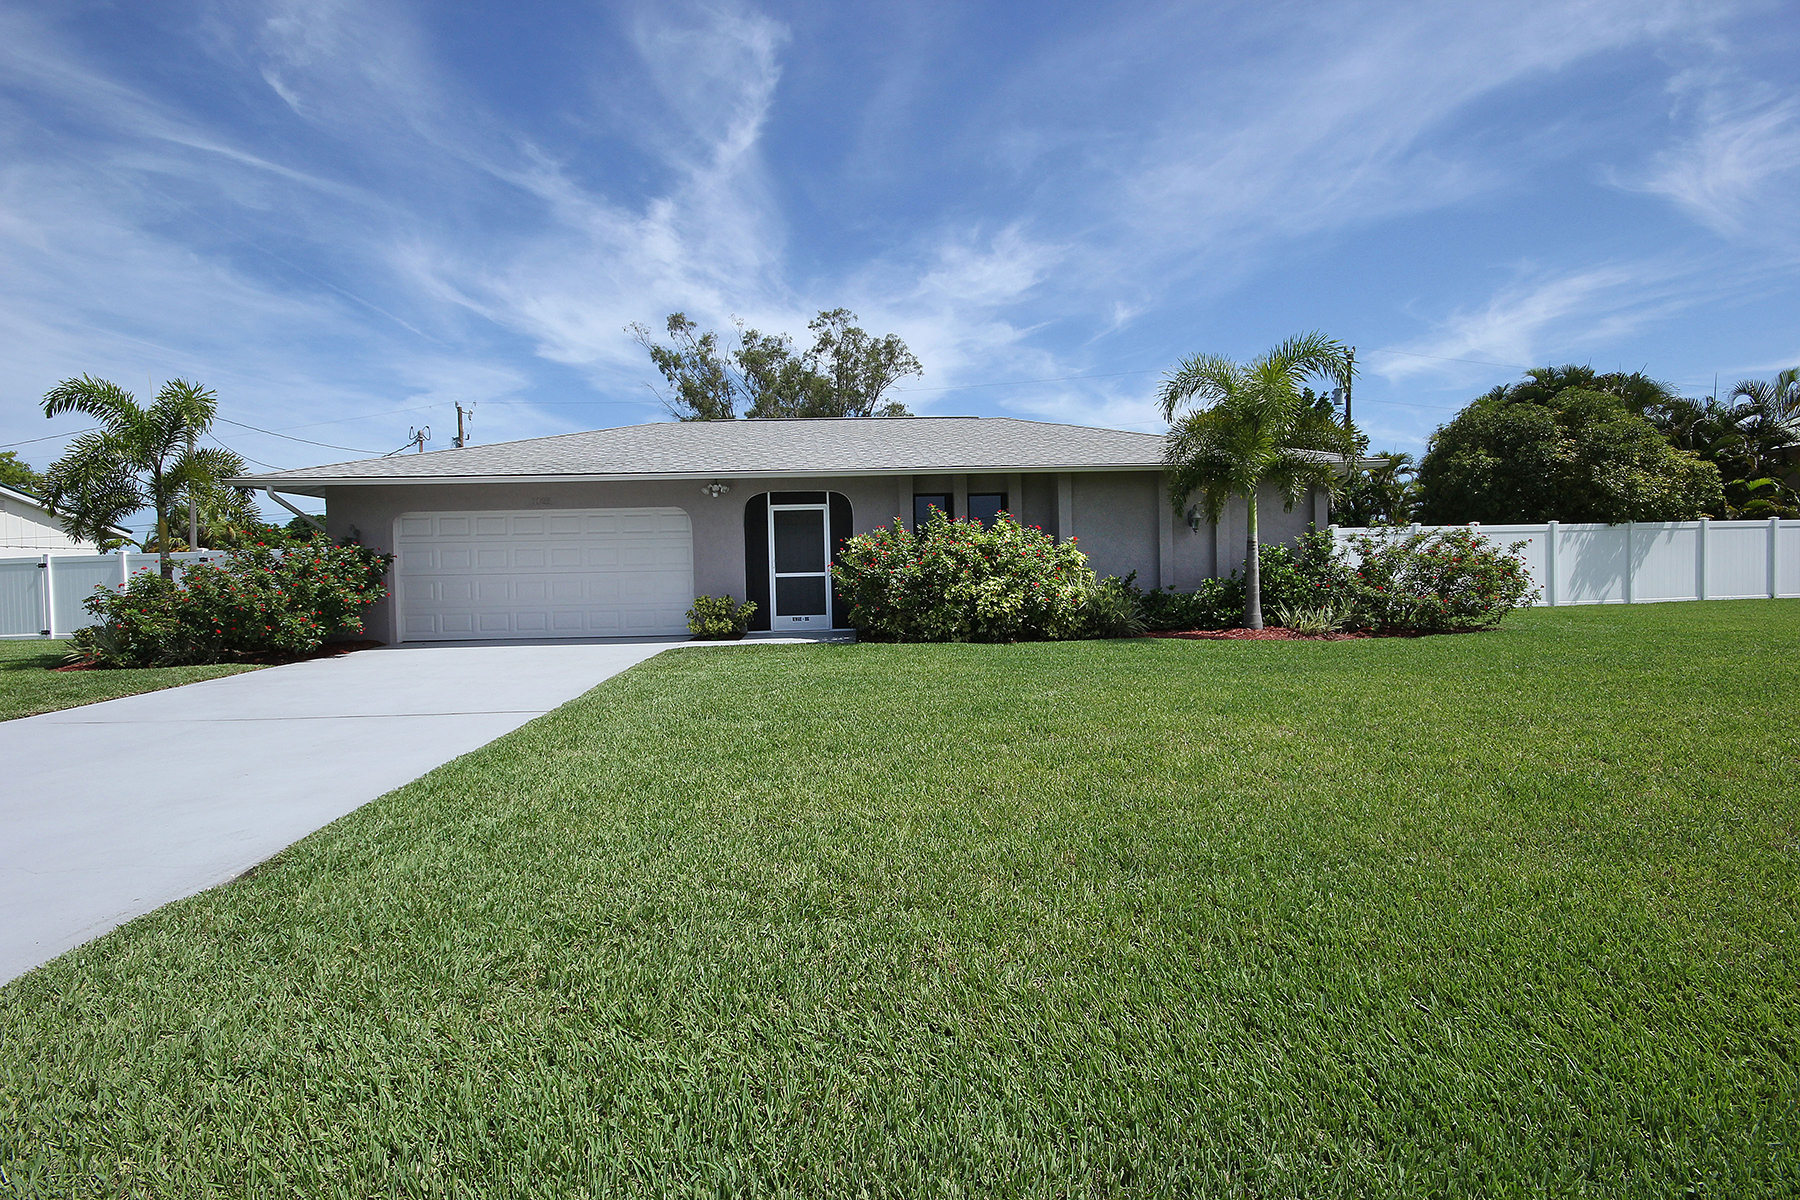 Property For Sale at 1025 E Archer , Cape Coral, FL 33904